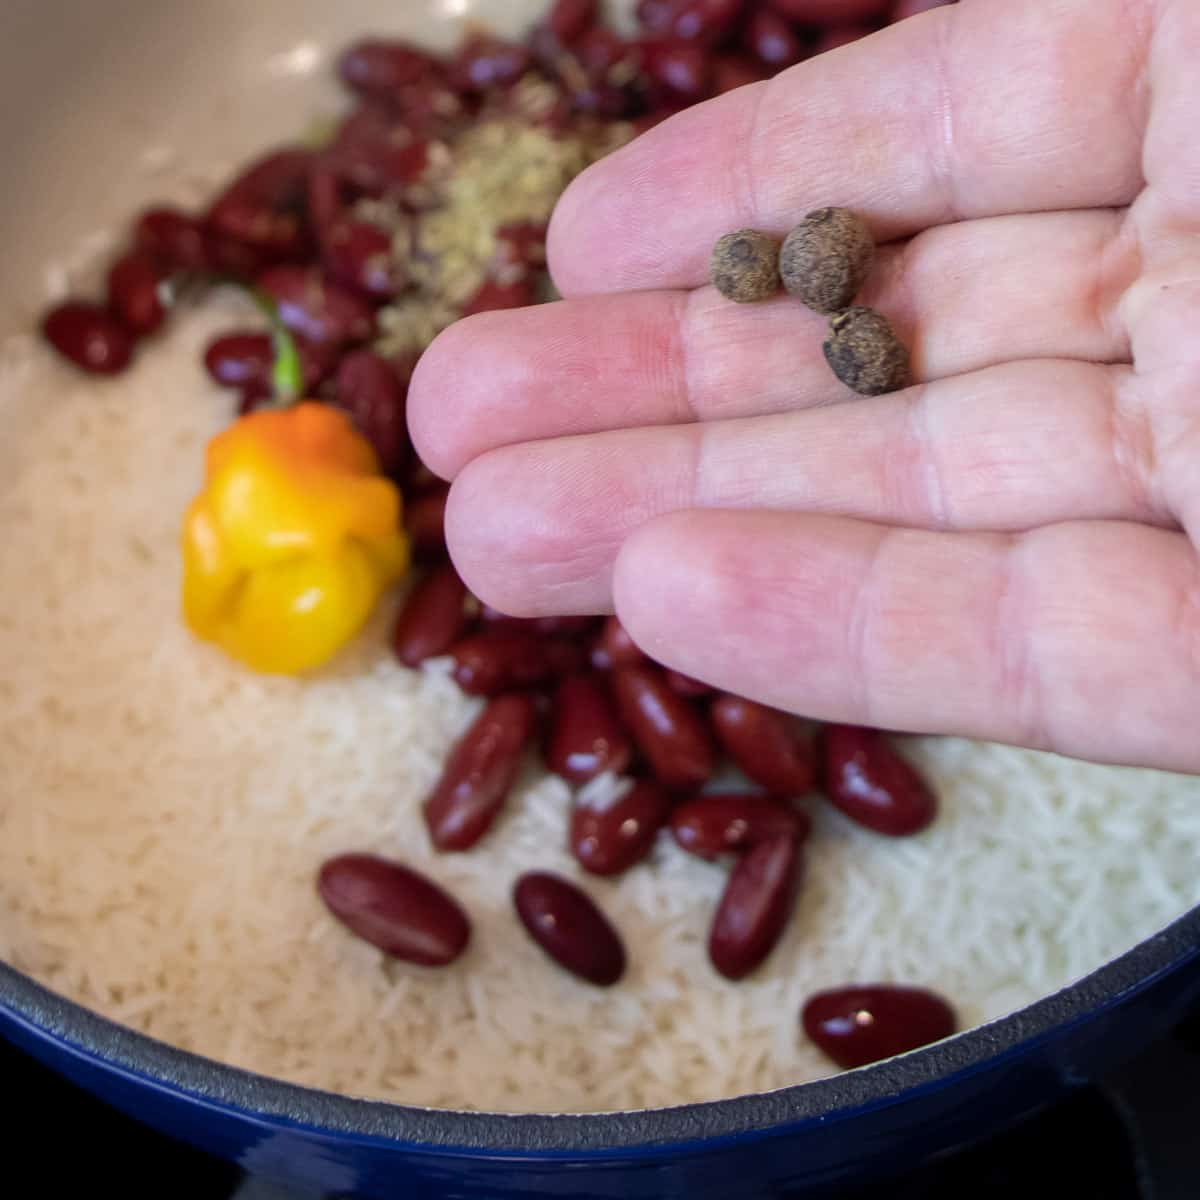 Holding three allspice berries over the pot.